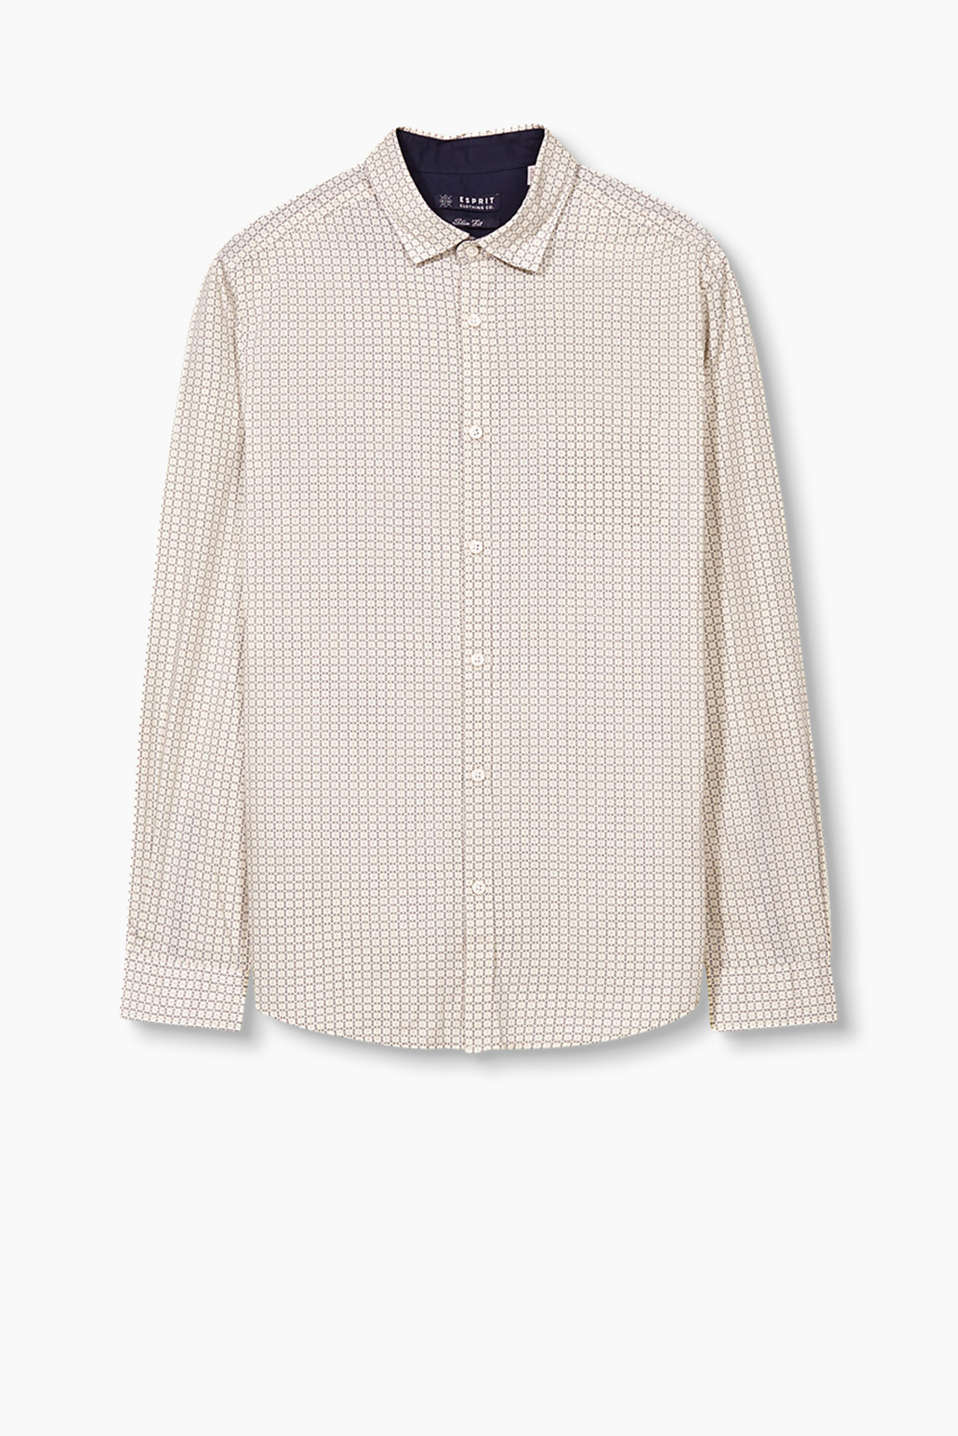 Cotton poplin shirt with an all-over print and breast pocket